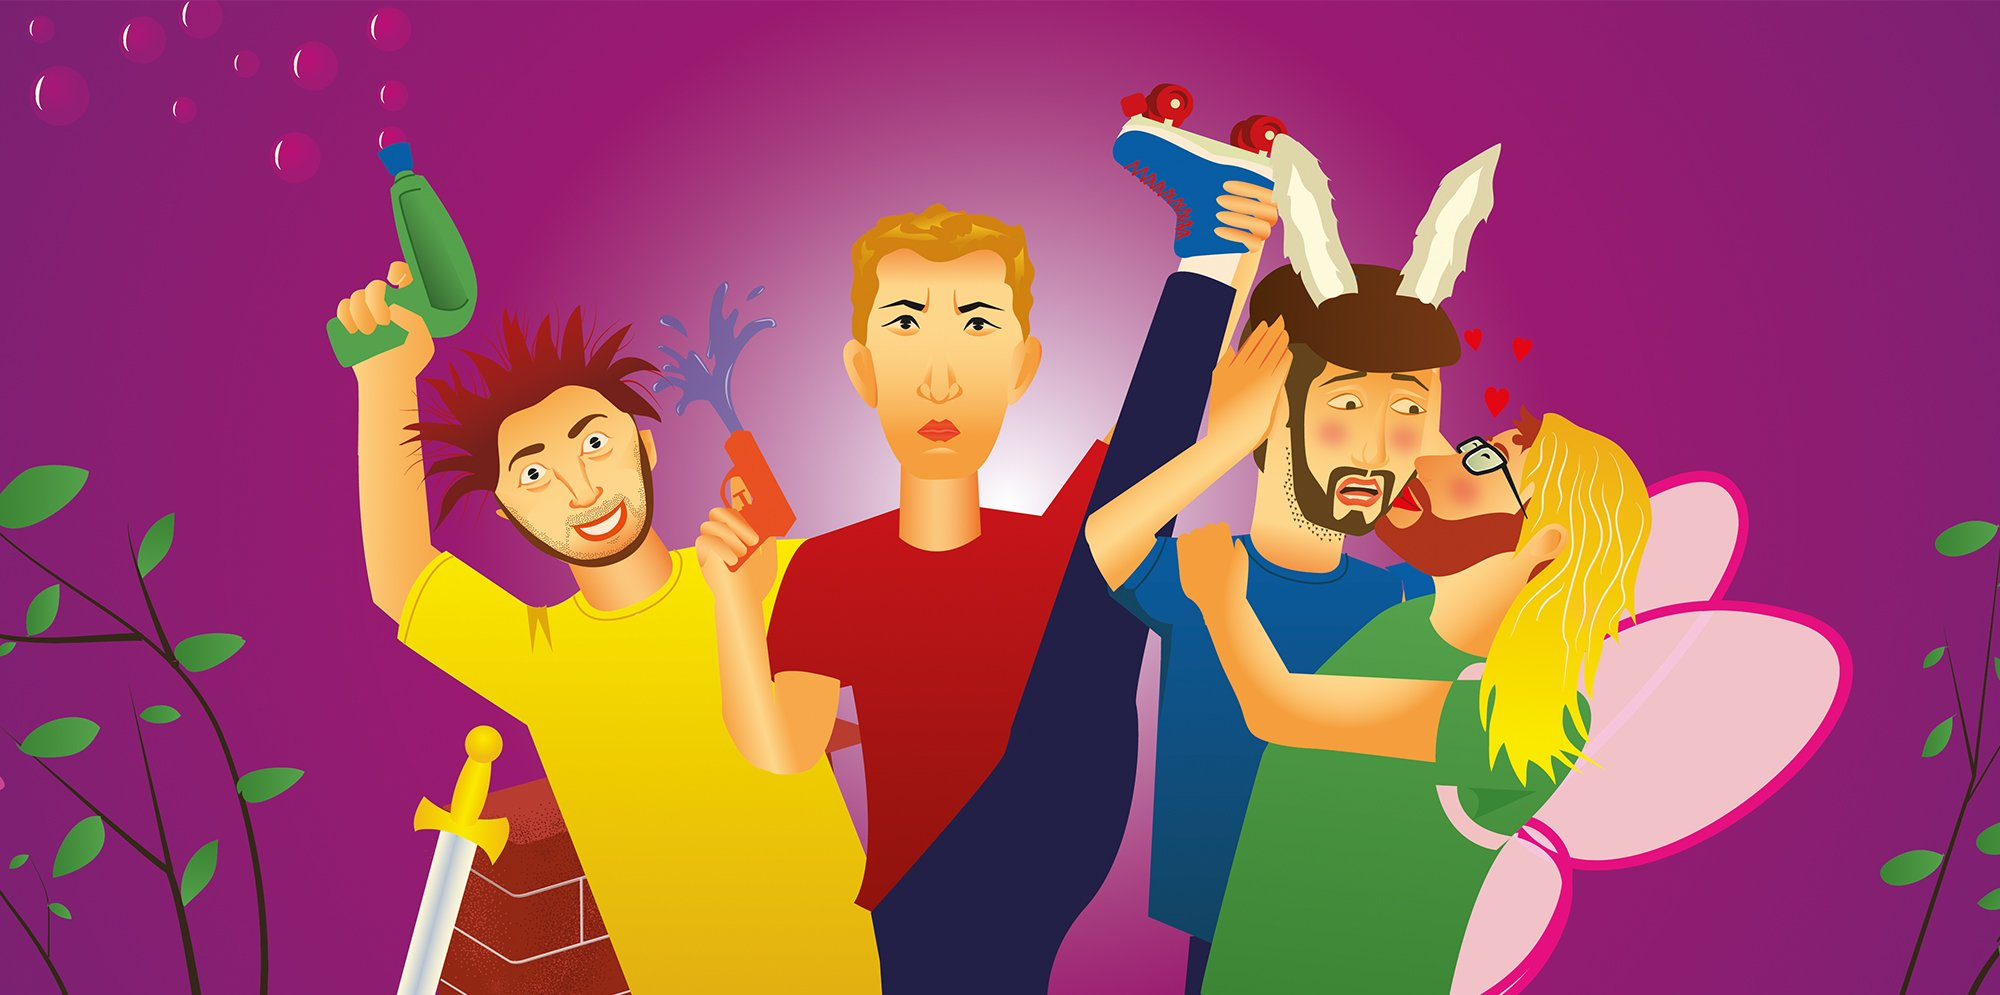 Four cartoon figures, two have water pistols, one is dressed as a donkey and is being kissed by one dressed as a fairy